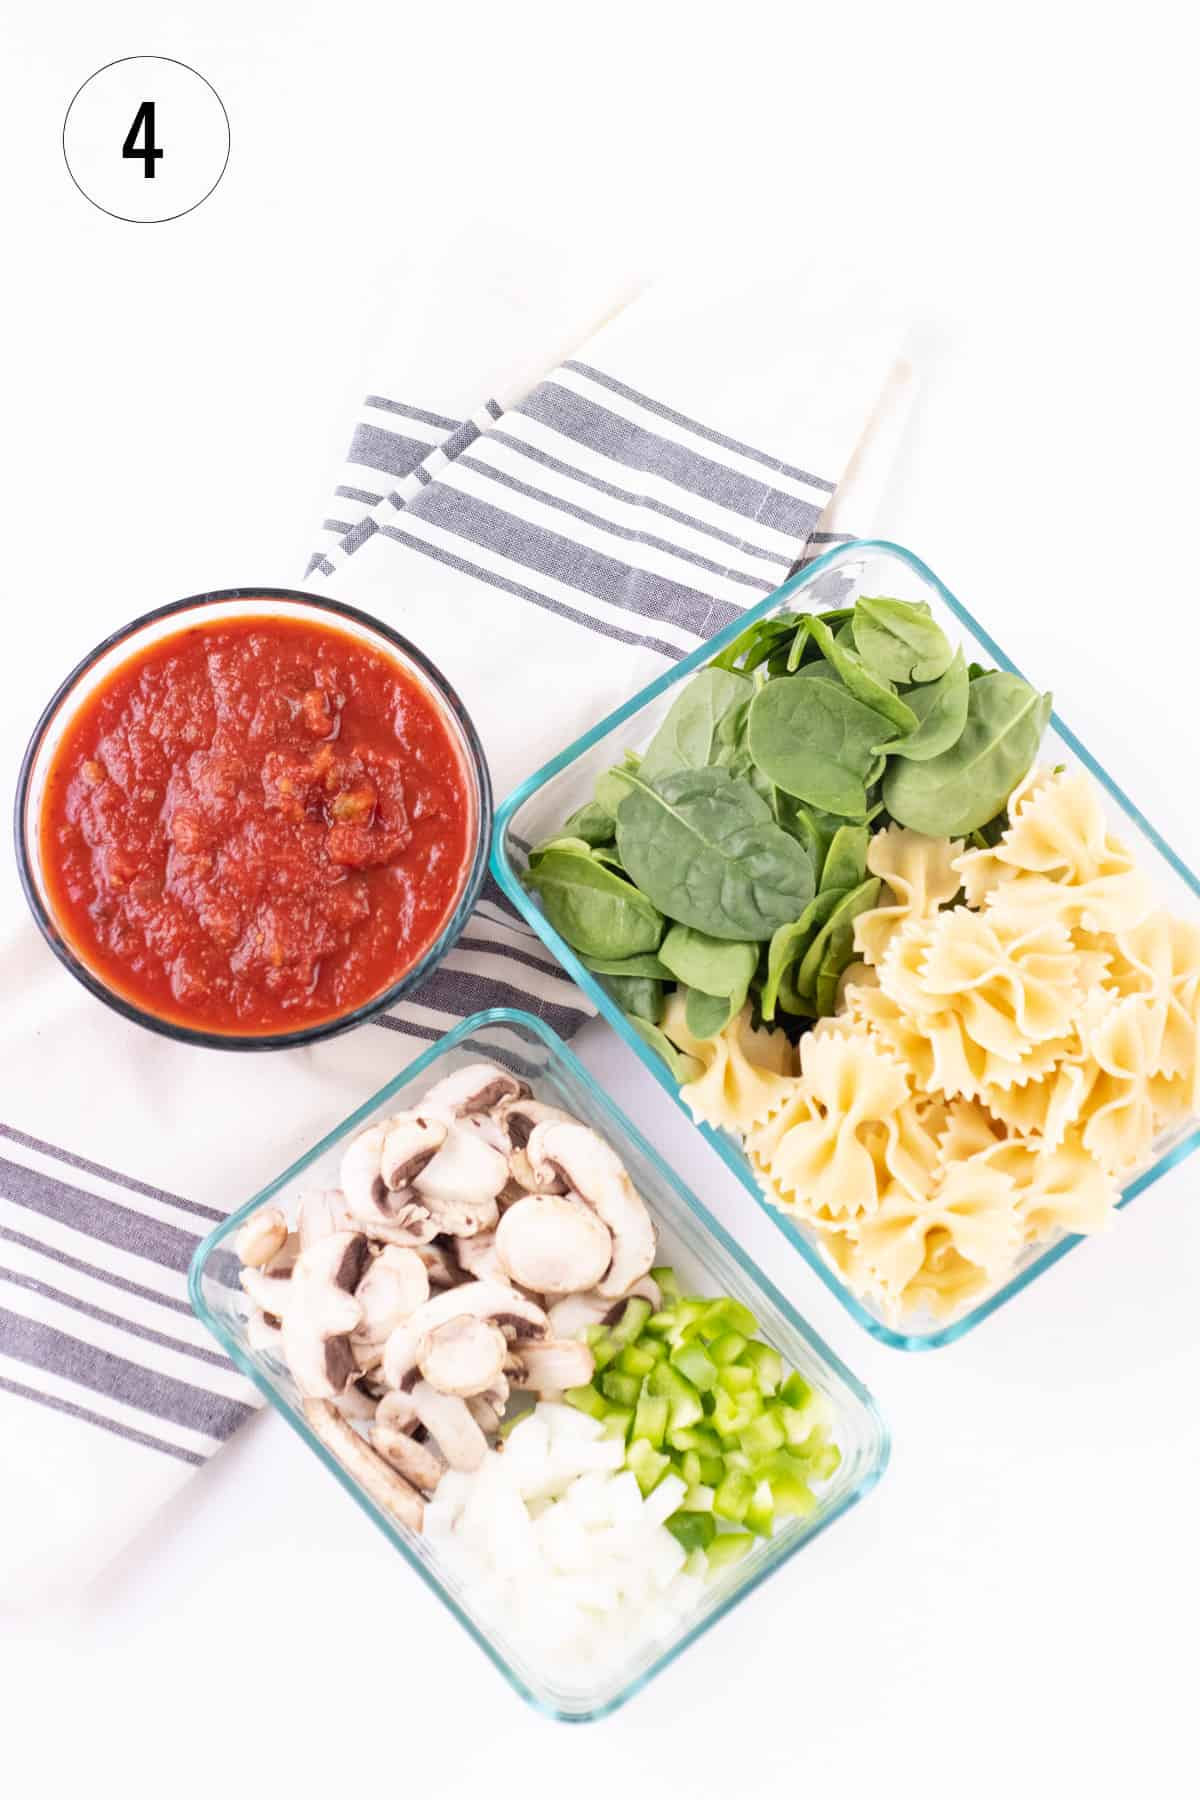 Glass containers filled with (clockwise from left) marinara sauce, baby spinach, cooked bow-tie pasta, diced green bell peppers and onions and sliced mushrooms on a striped towel to make stovetop lasagna.